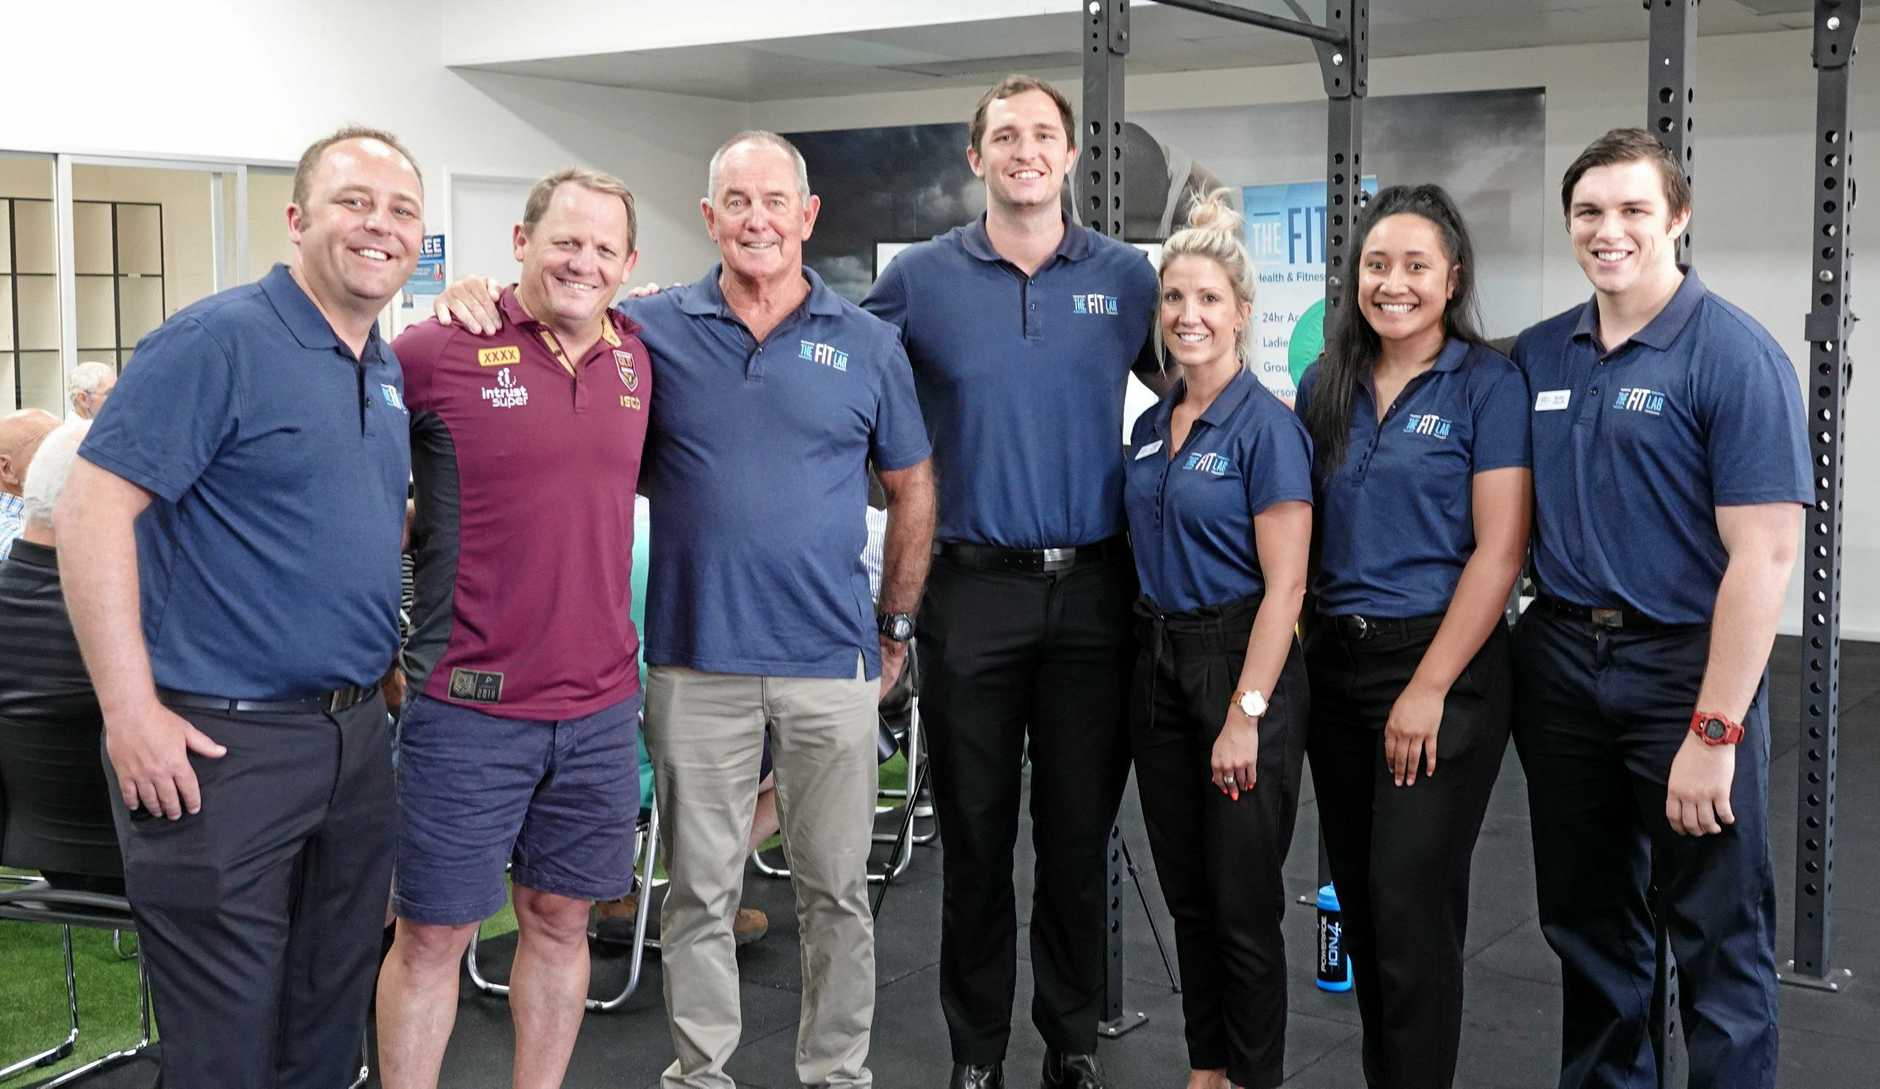 GOOD CAUSE: Helping in the fight against prostate cancer are (from left) Steve Hillman, Kevin Walters, Steve Nance, Corey Wolski, Tammy Sloan, Caroline Tupou and Blake Cullen.